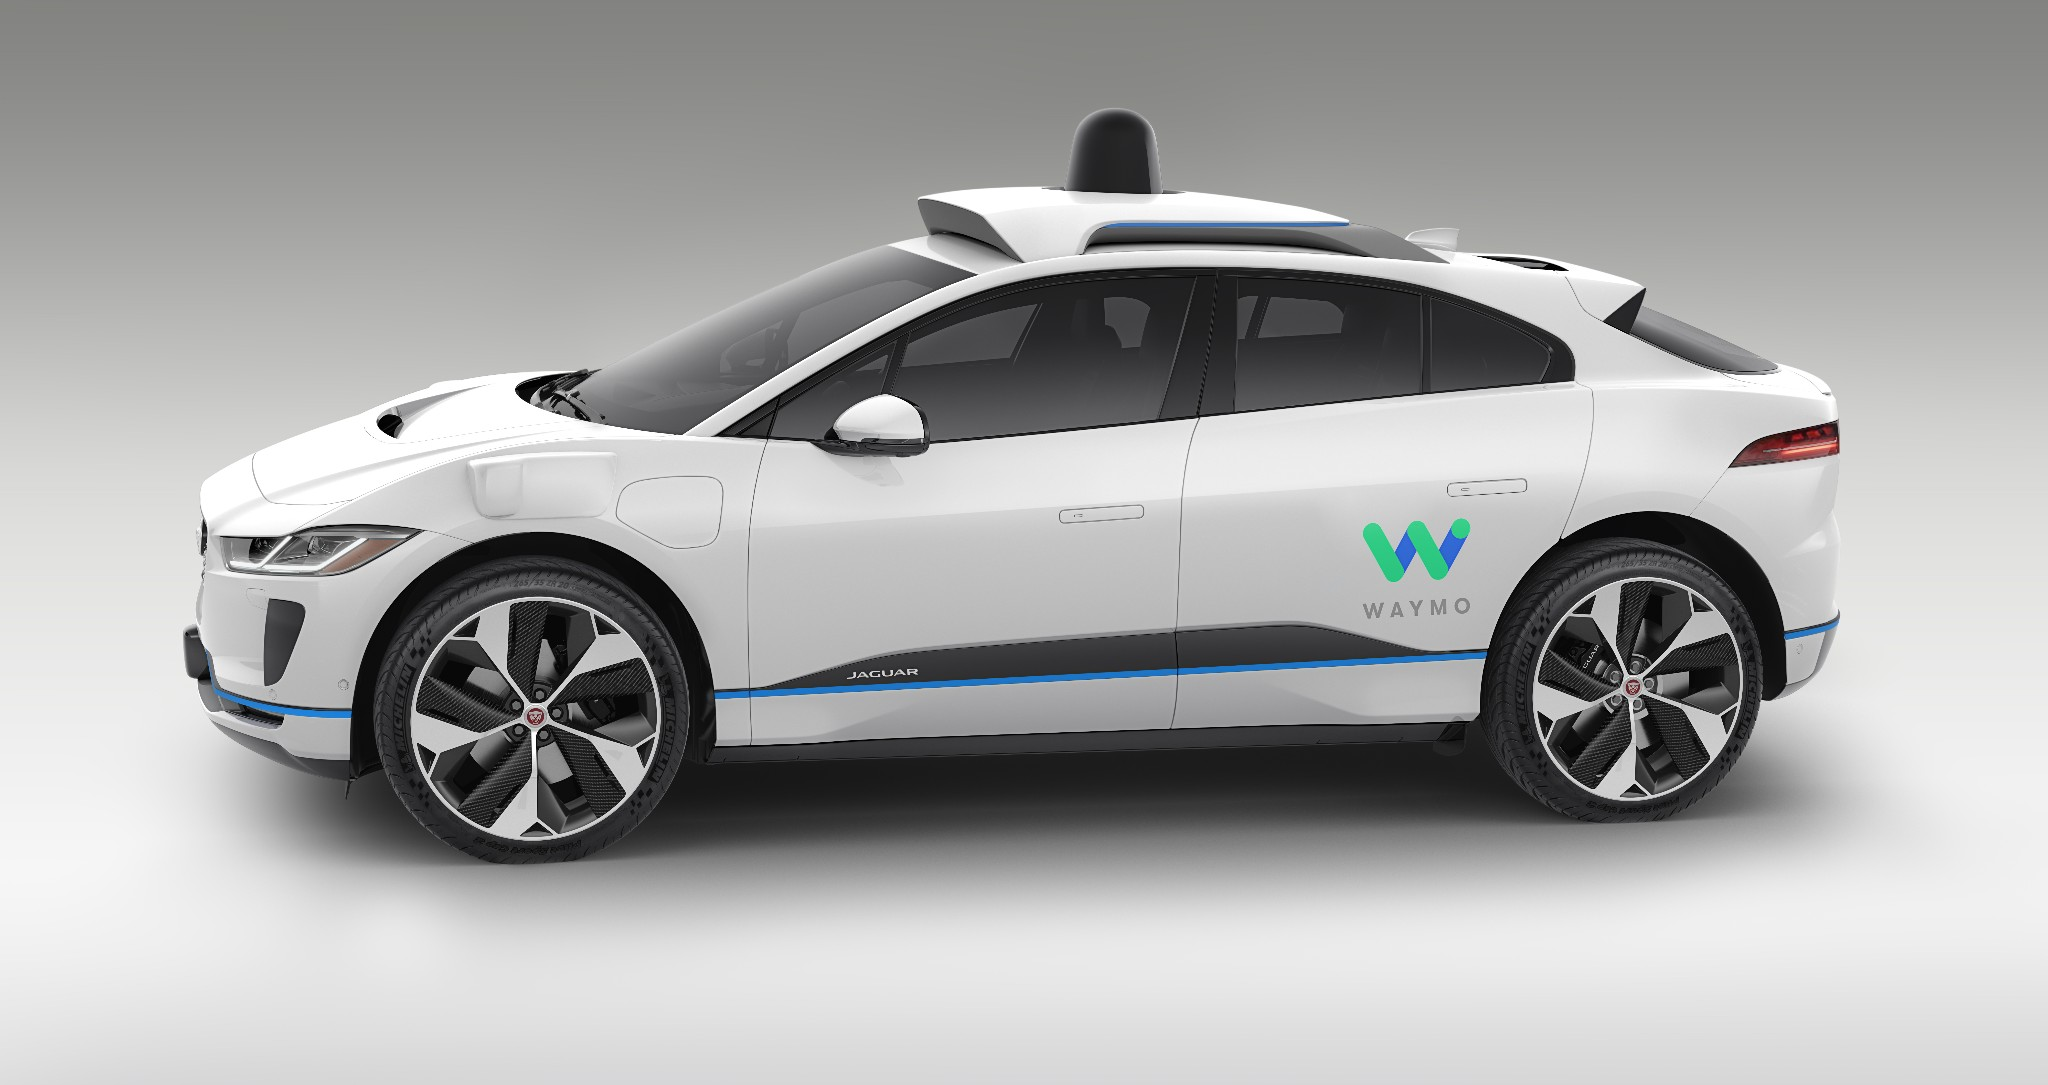 Alphabet will operate a fleet of 20,000 Jaguar cars for its driverless ride-hail service by 2022